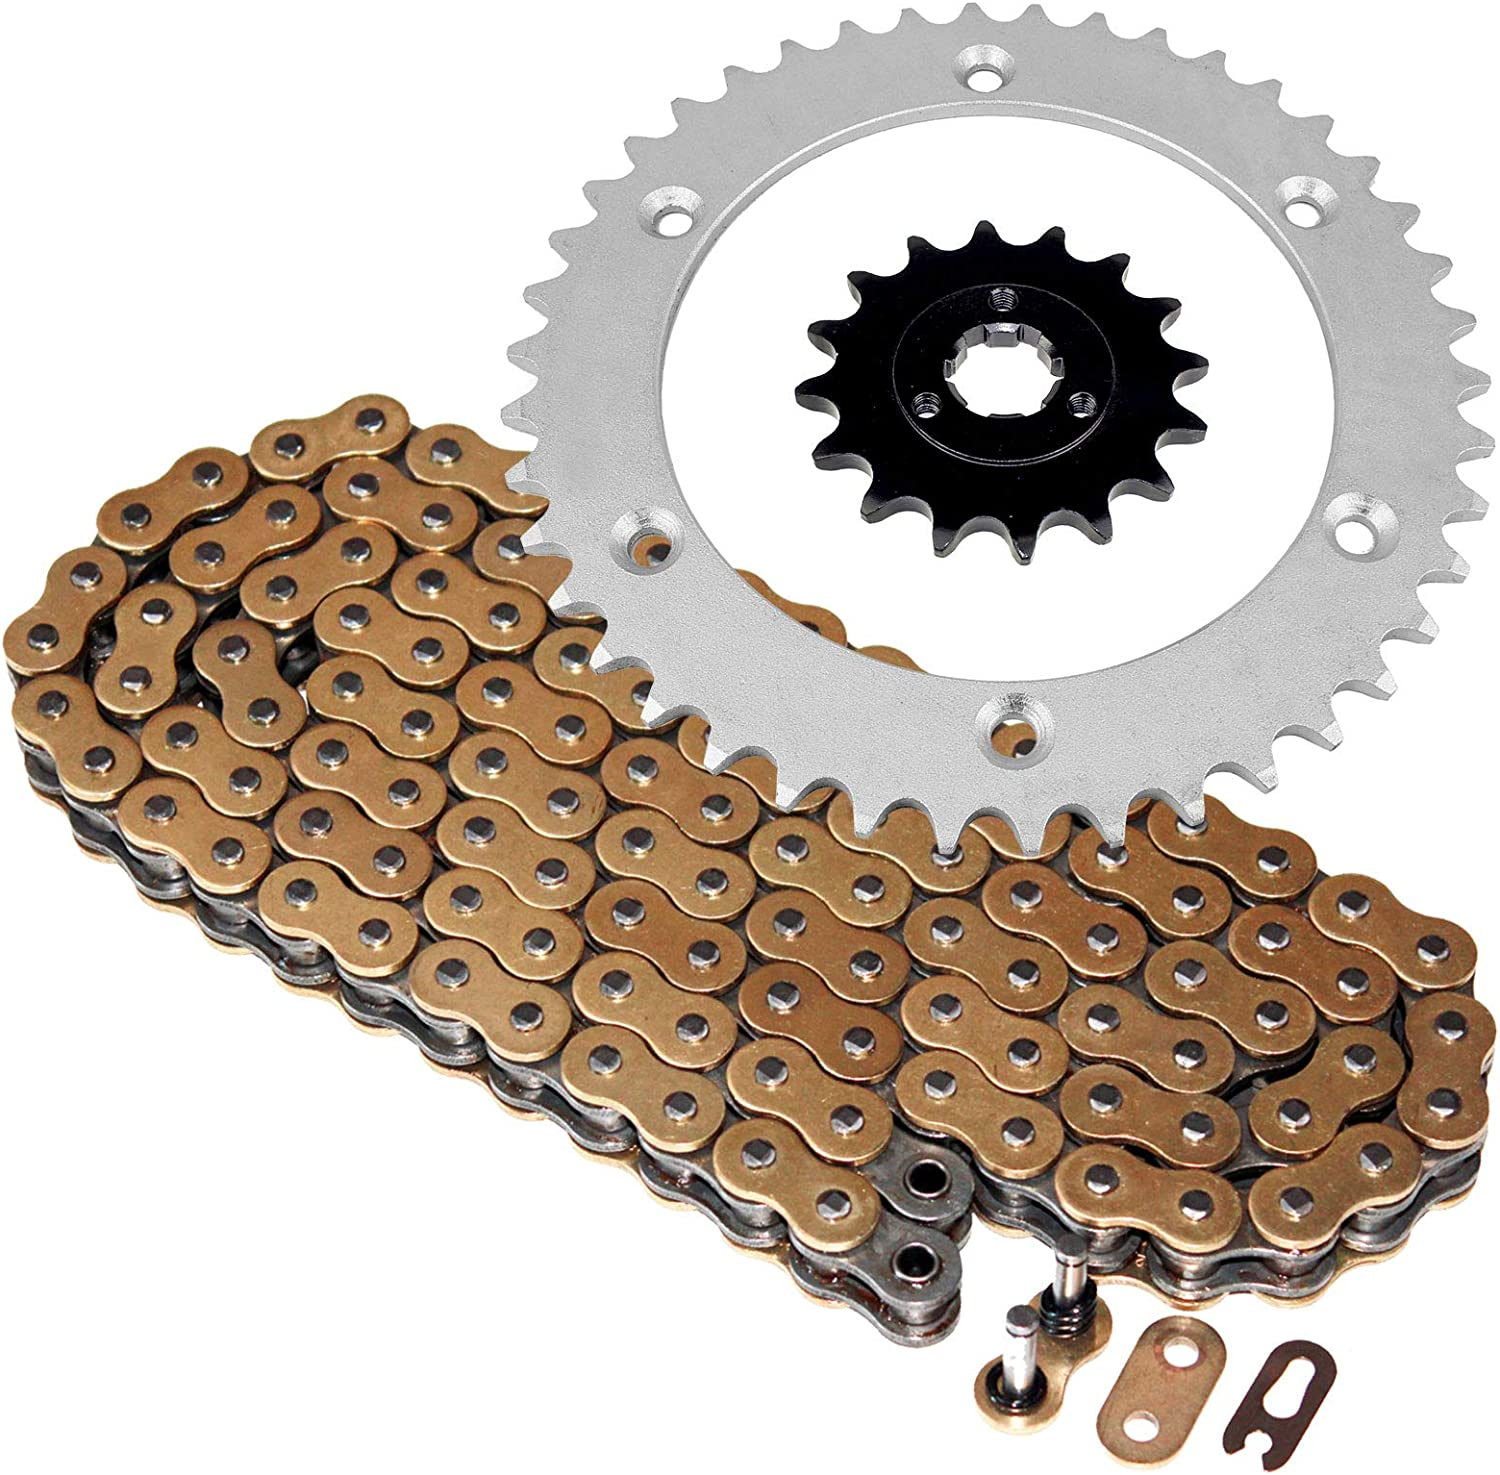 Caltric compatible with Max 73% OFF Gold Cheap mail order specialty store O-Ring Chain Kit Drive Sprockets